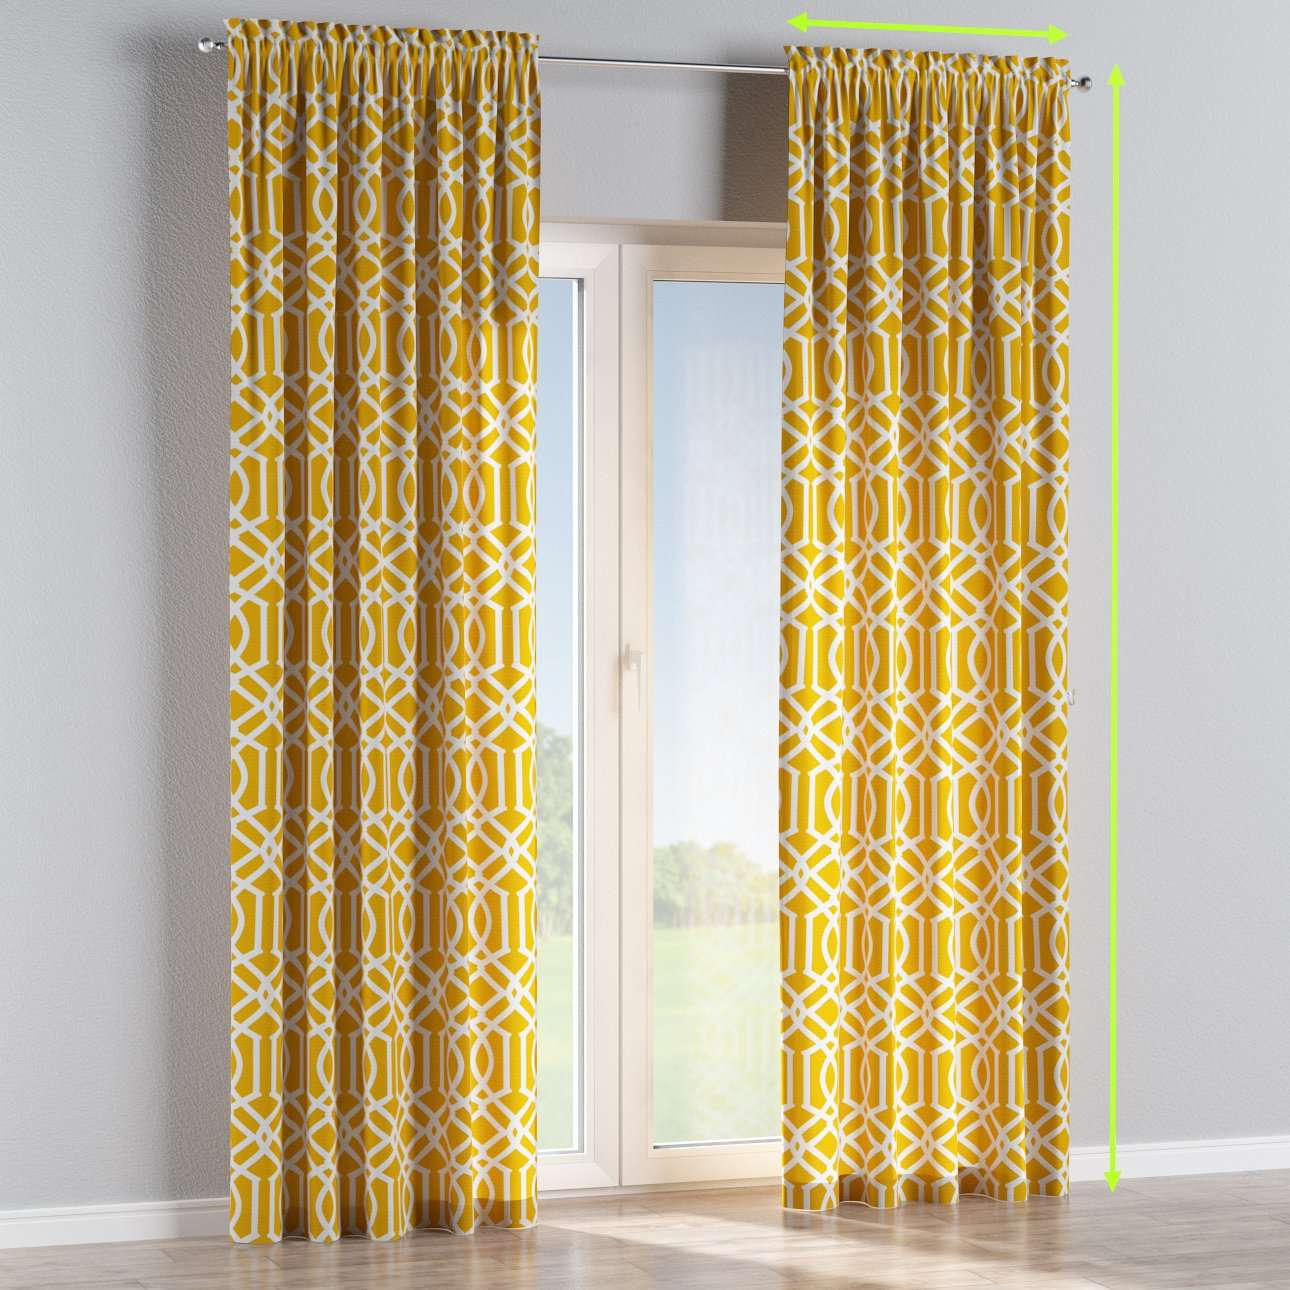 Slot and frill lined curtains in collection Comic Book & Geo Prints, fabric: 135-09